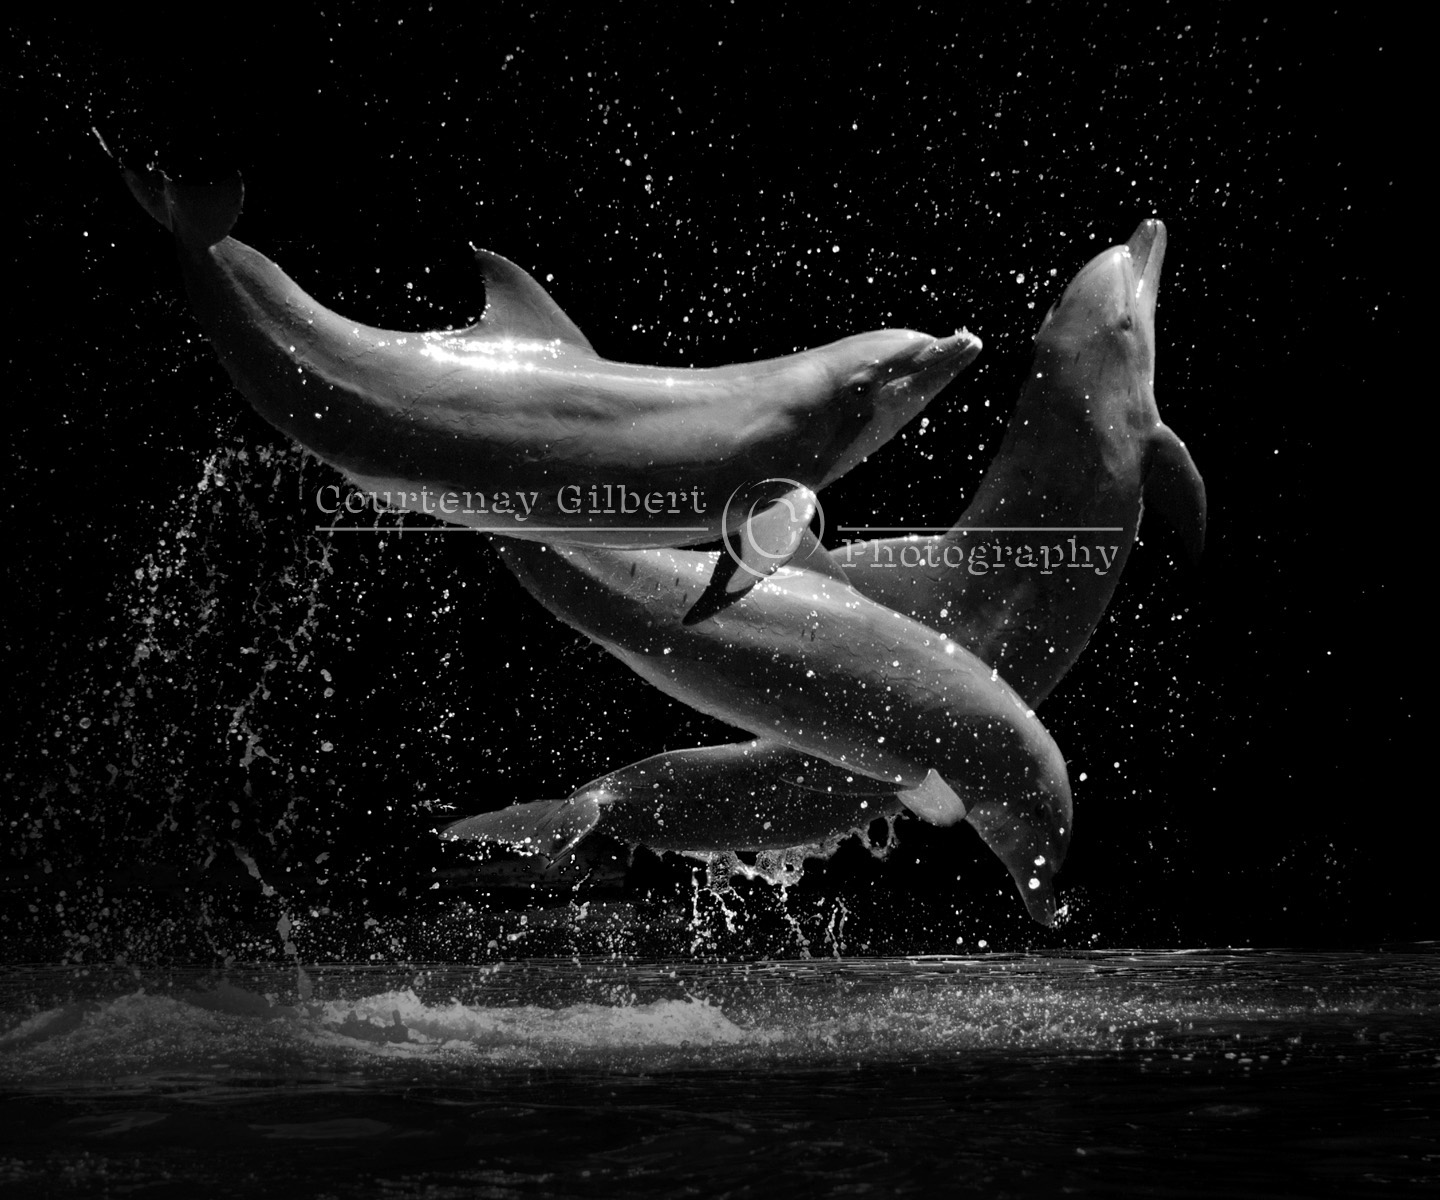 COURTENAY GILBERT photography: Dolphin Ballet